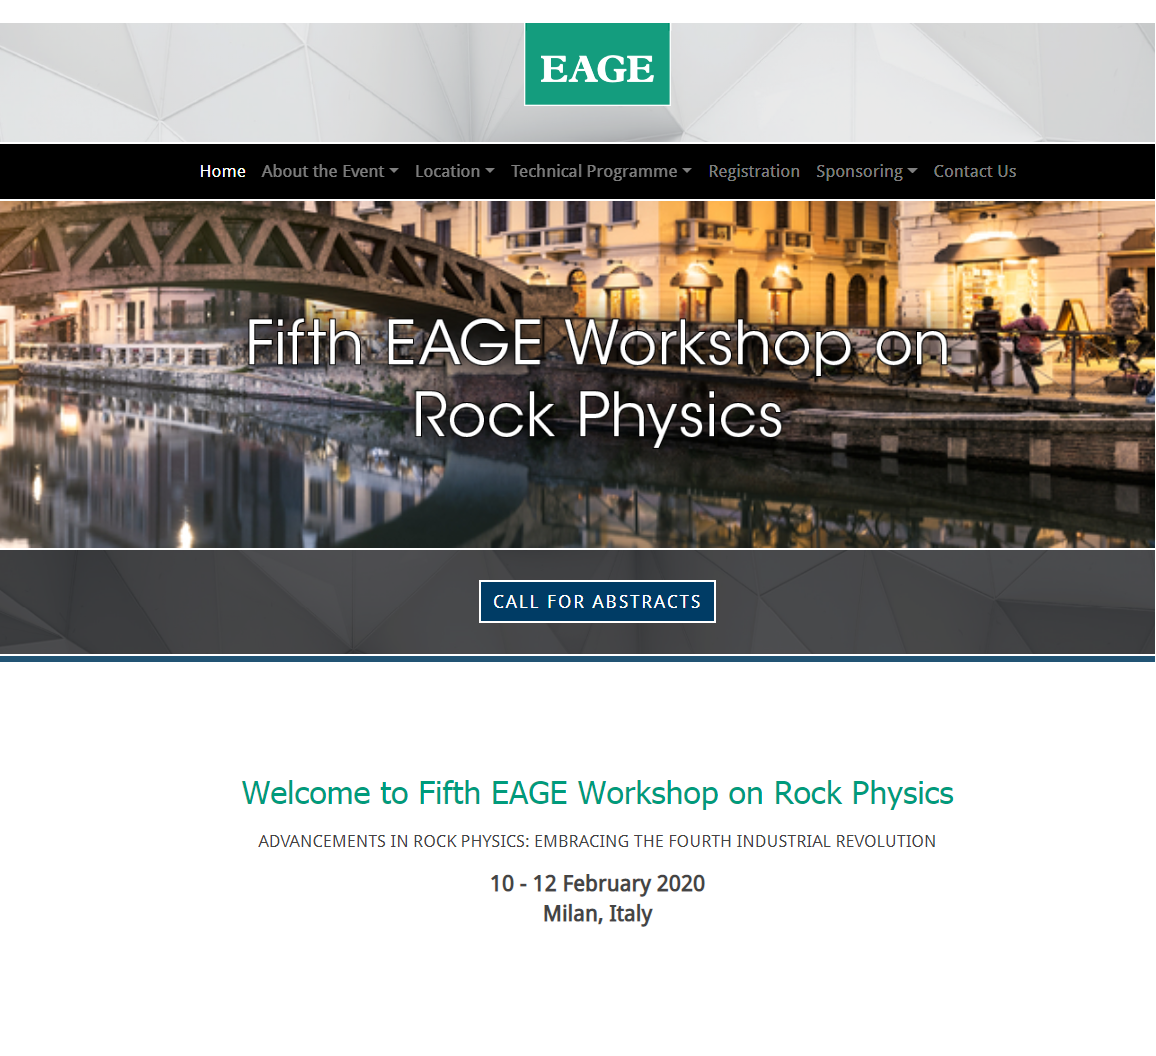 Call for abstracts: 5th EAGE Workshop on Rock Physics